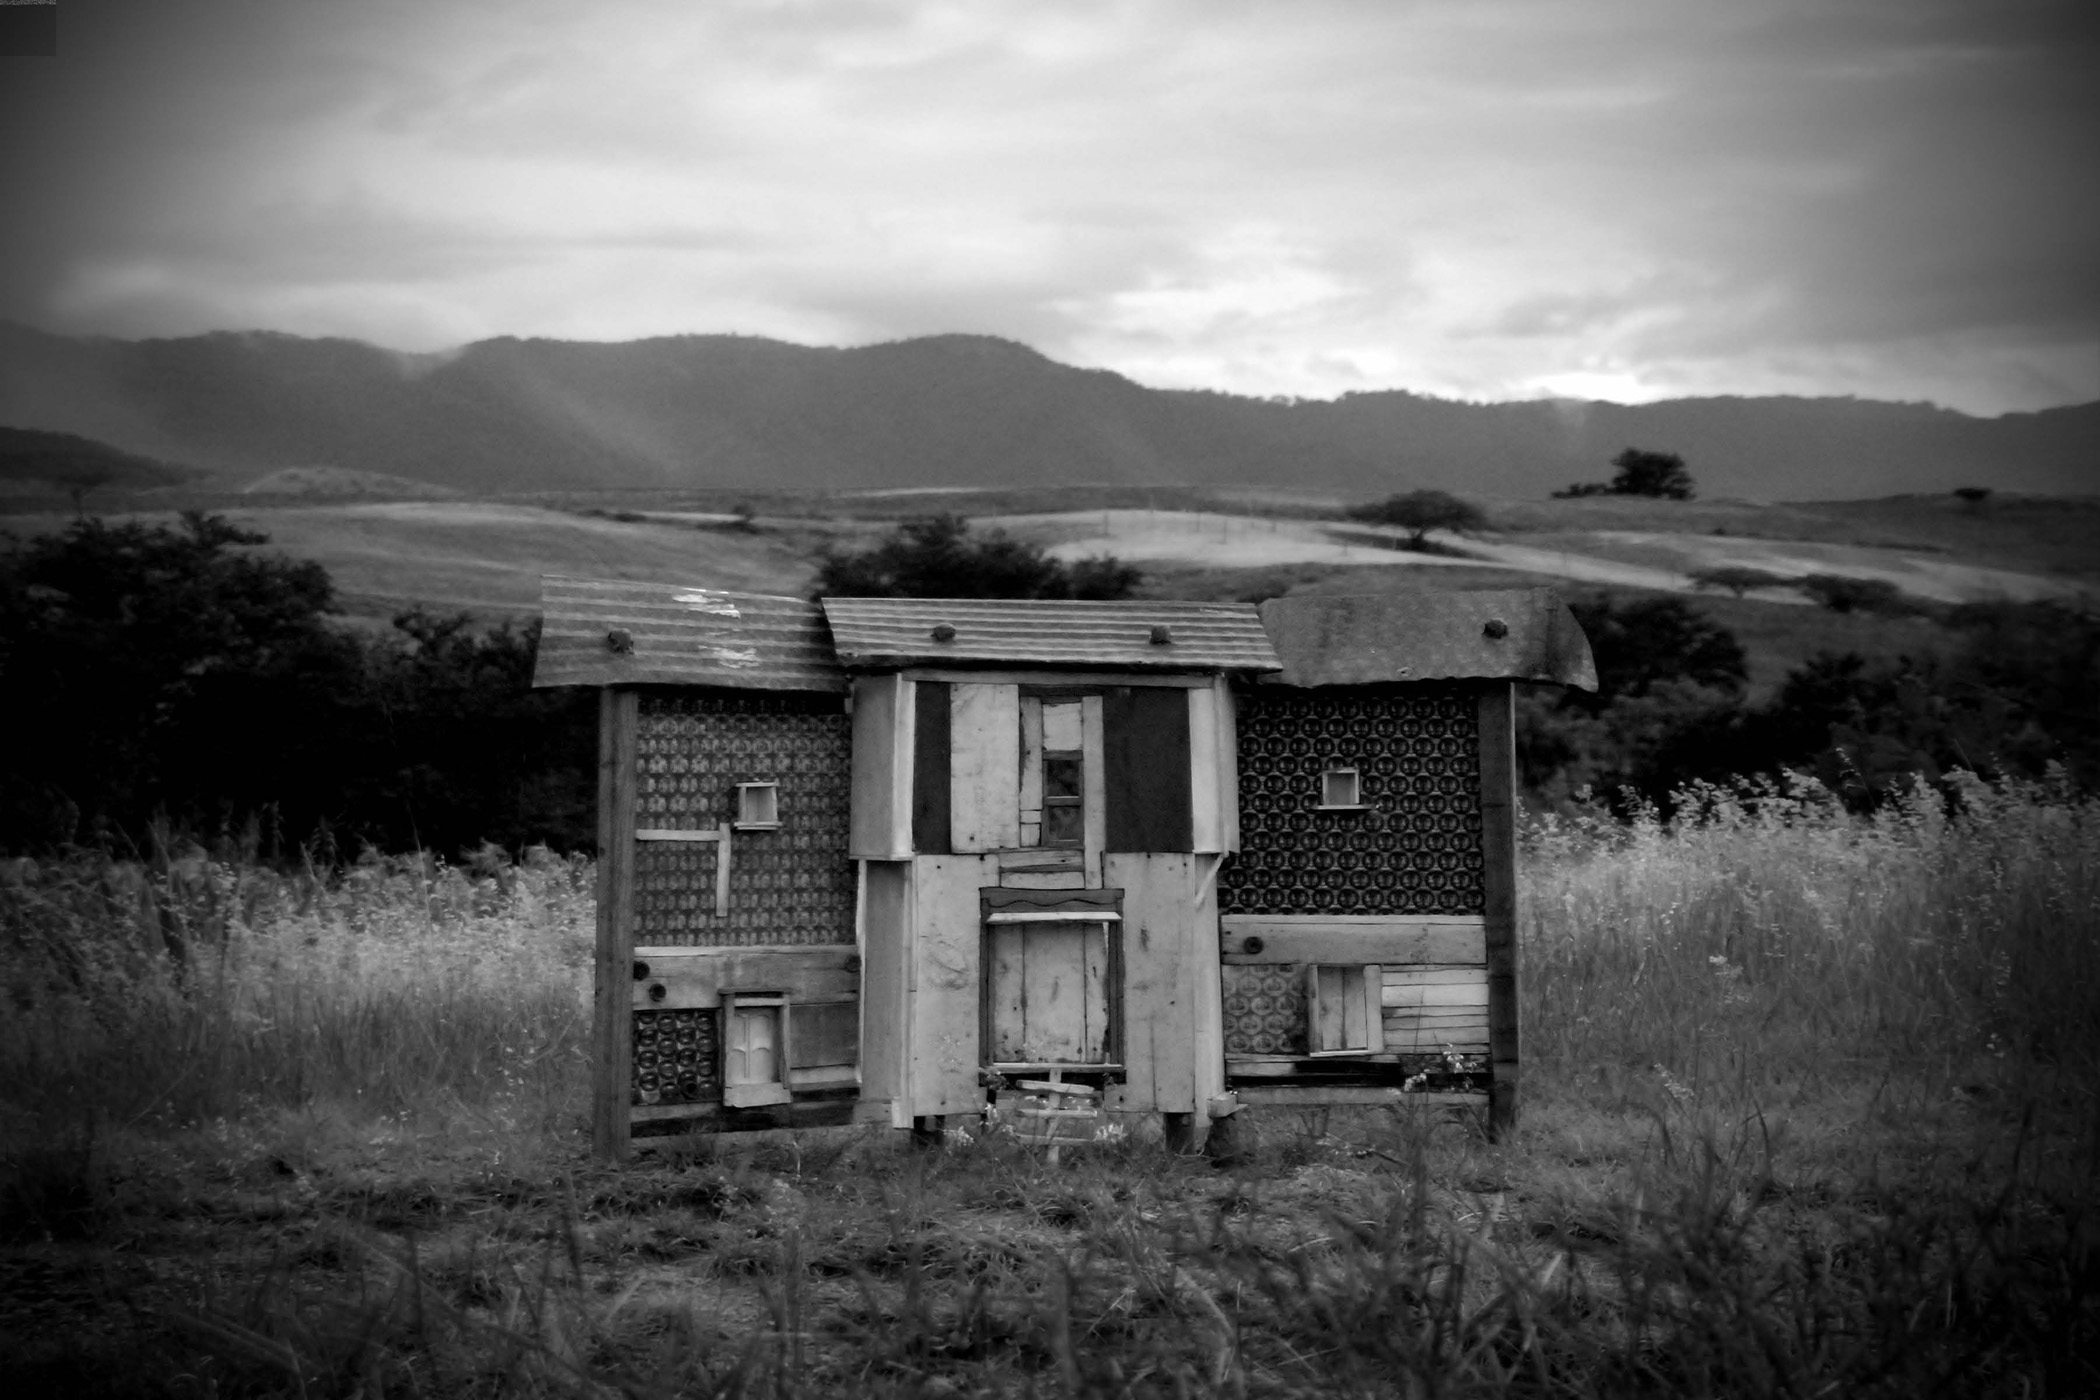 Oaxaca House, Photograph/Sculpture, Robert Hite, 2007